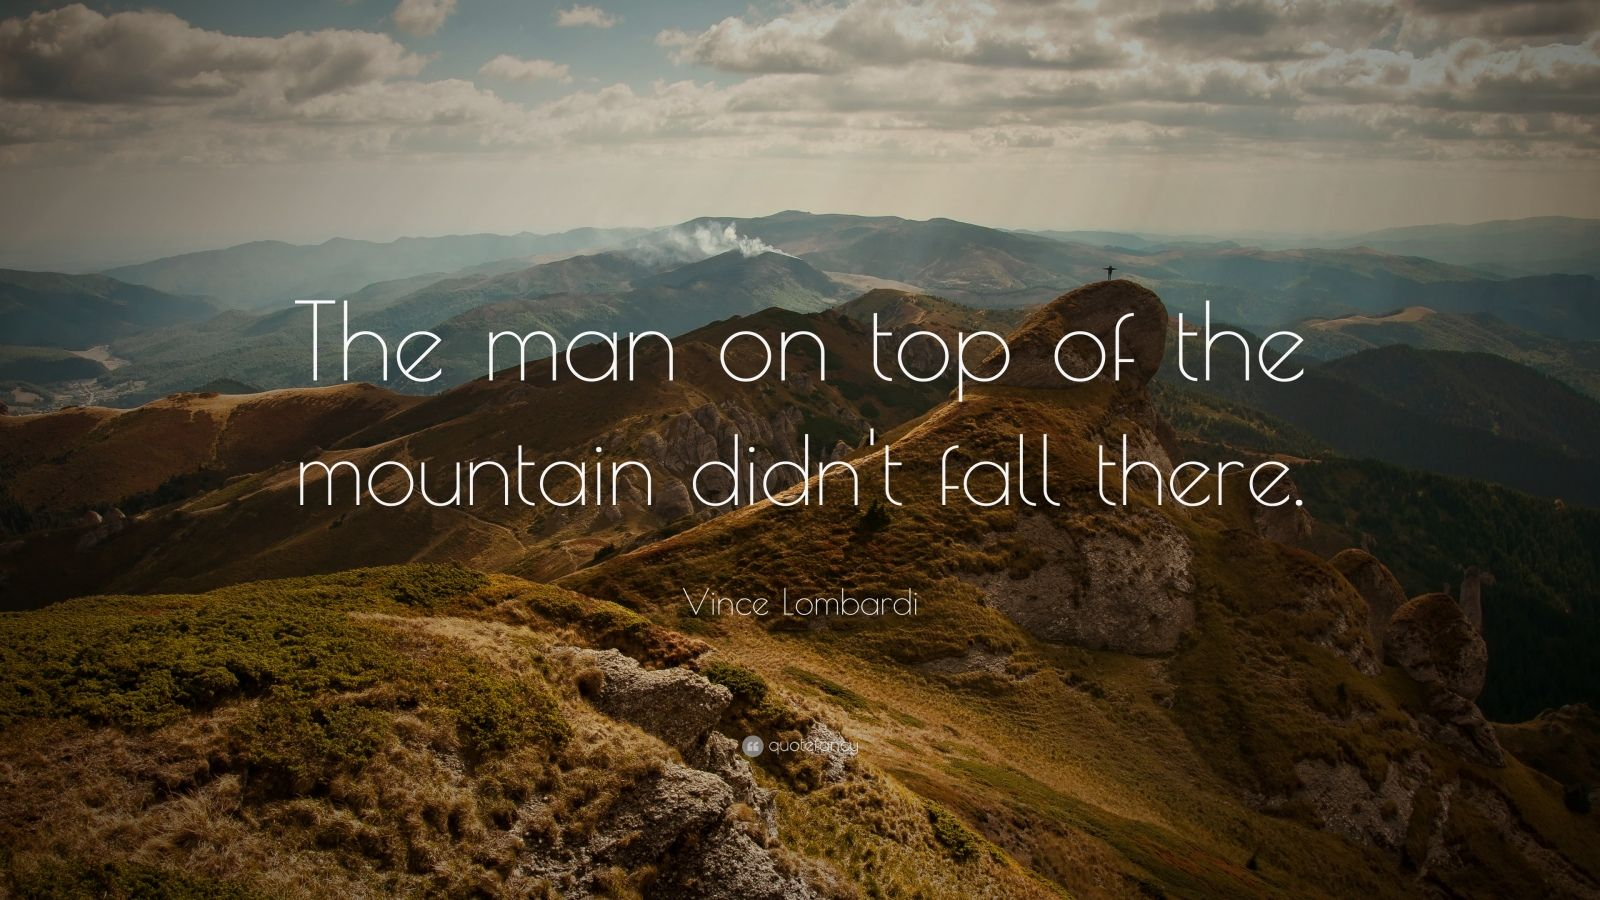 Life Quotes Wallpaper Images Vince Lombardi Quote The Man On Top Of The Mountain Didn